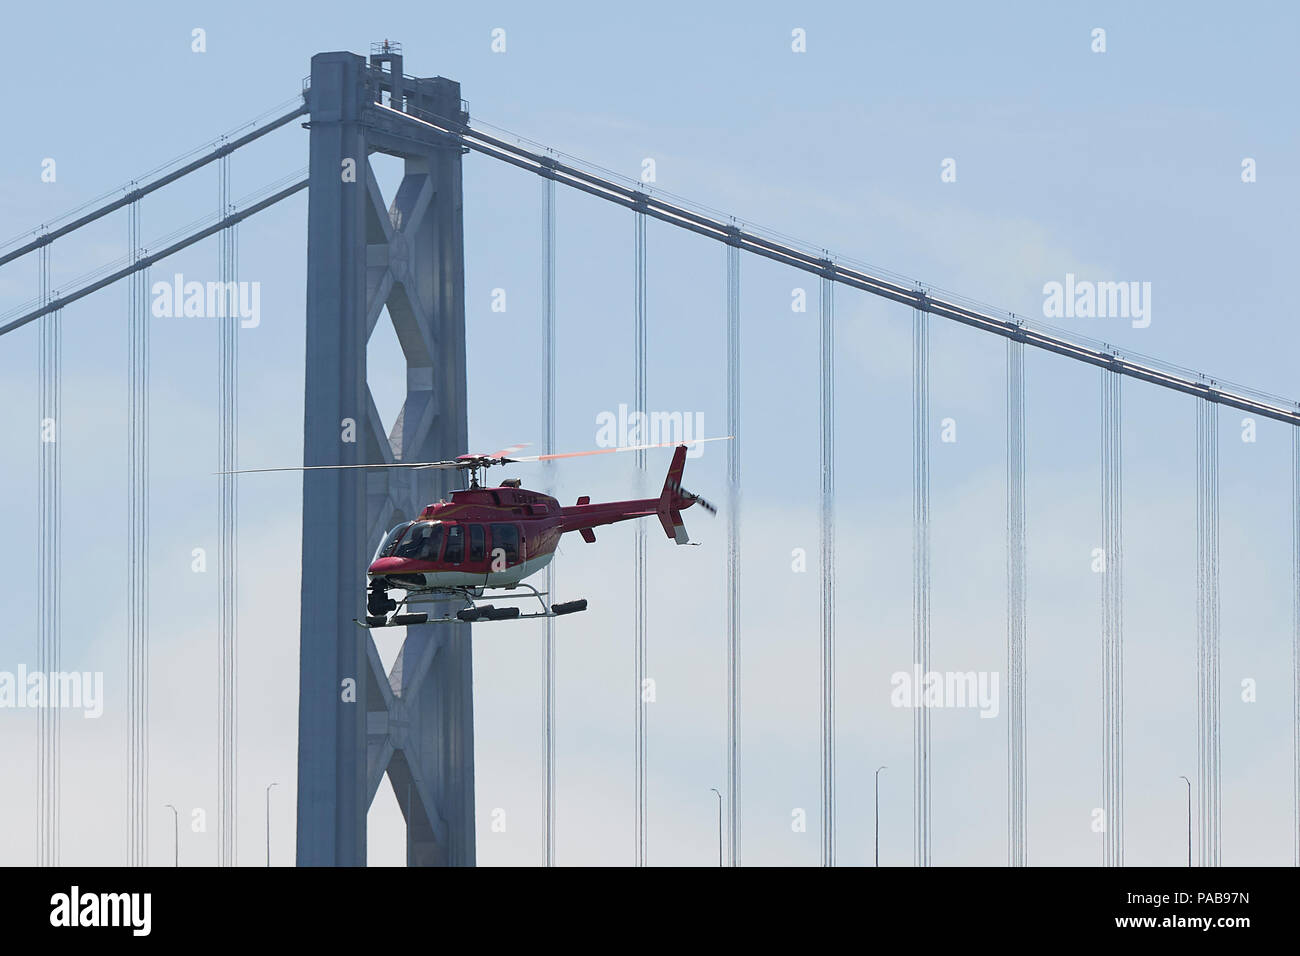 News Helicopter Flying Past The San Francisco-Oakland Bay